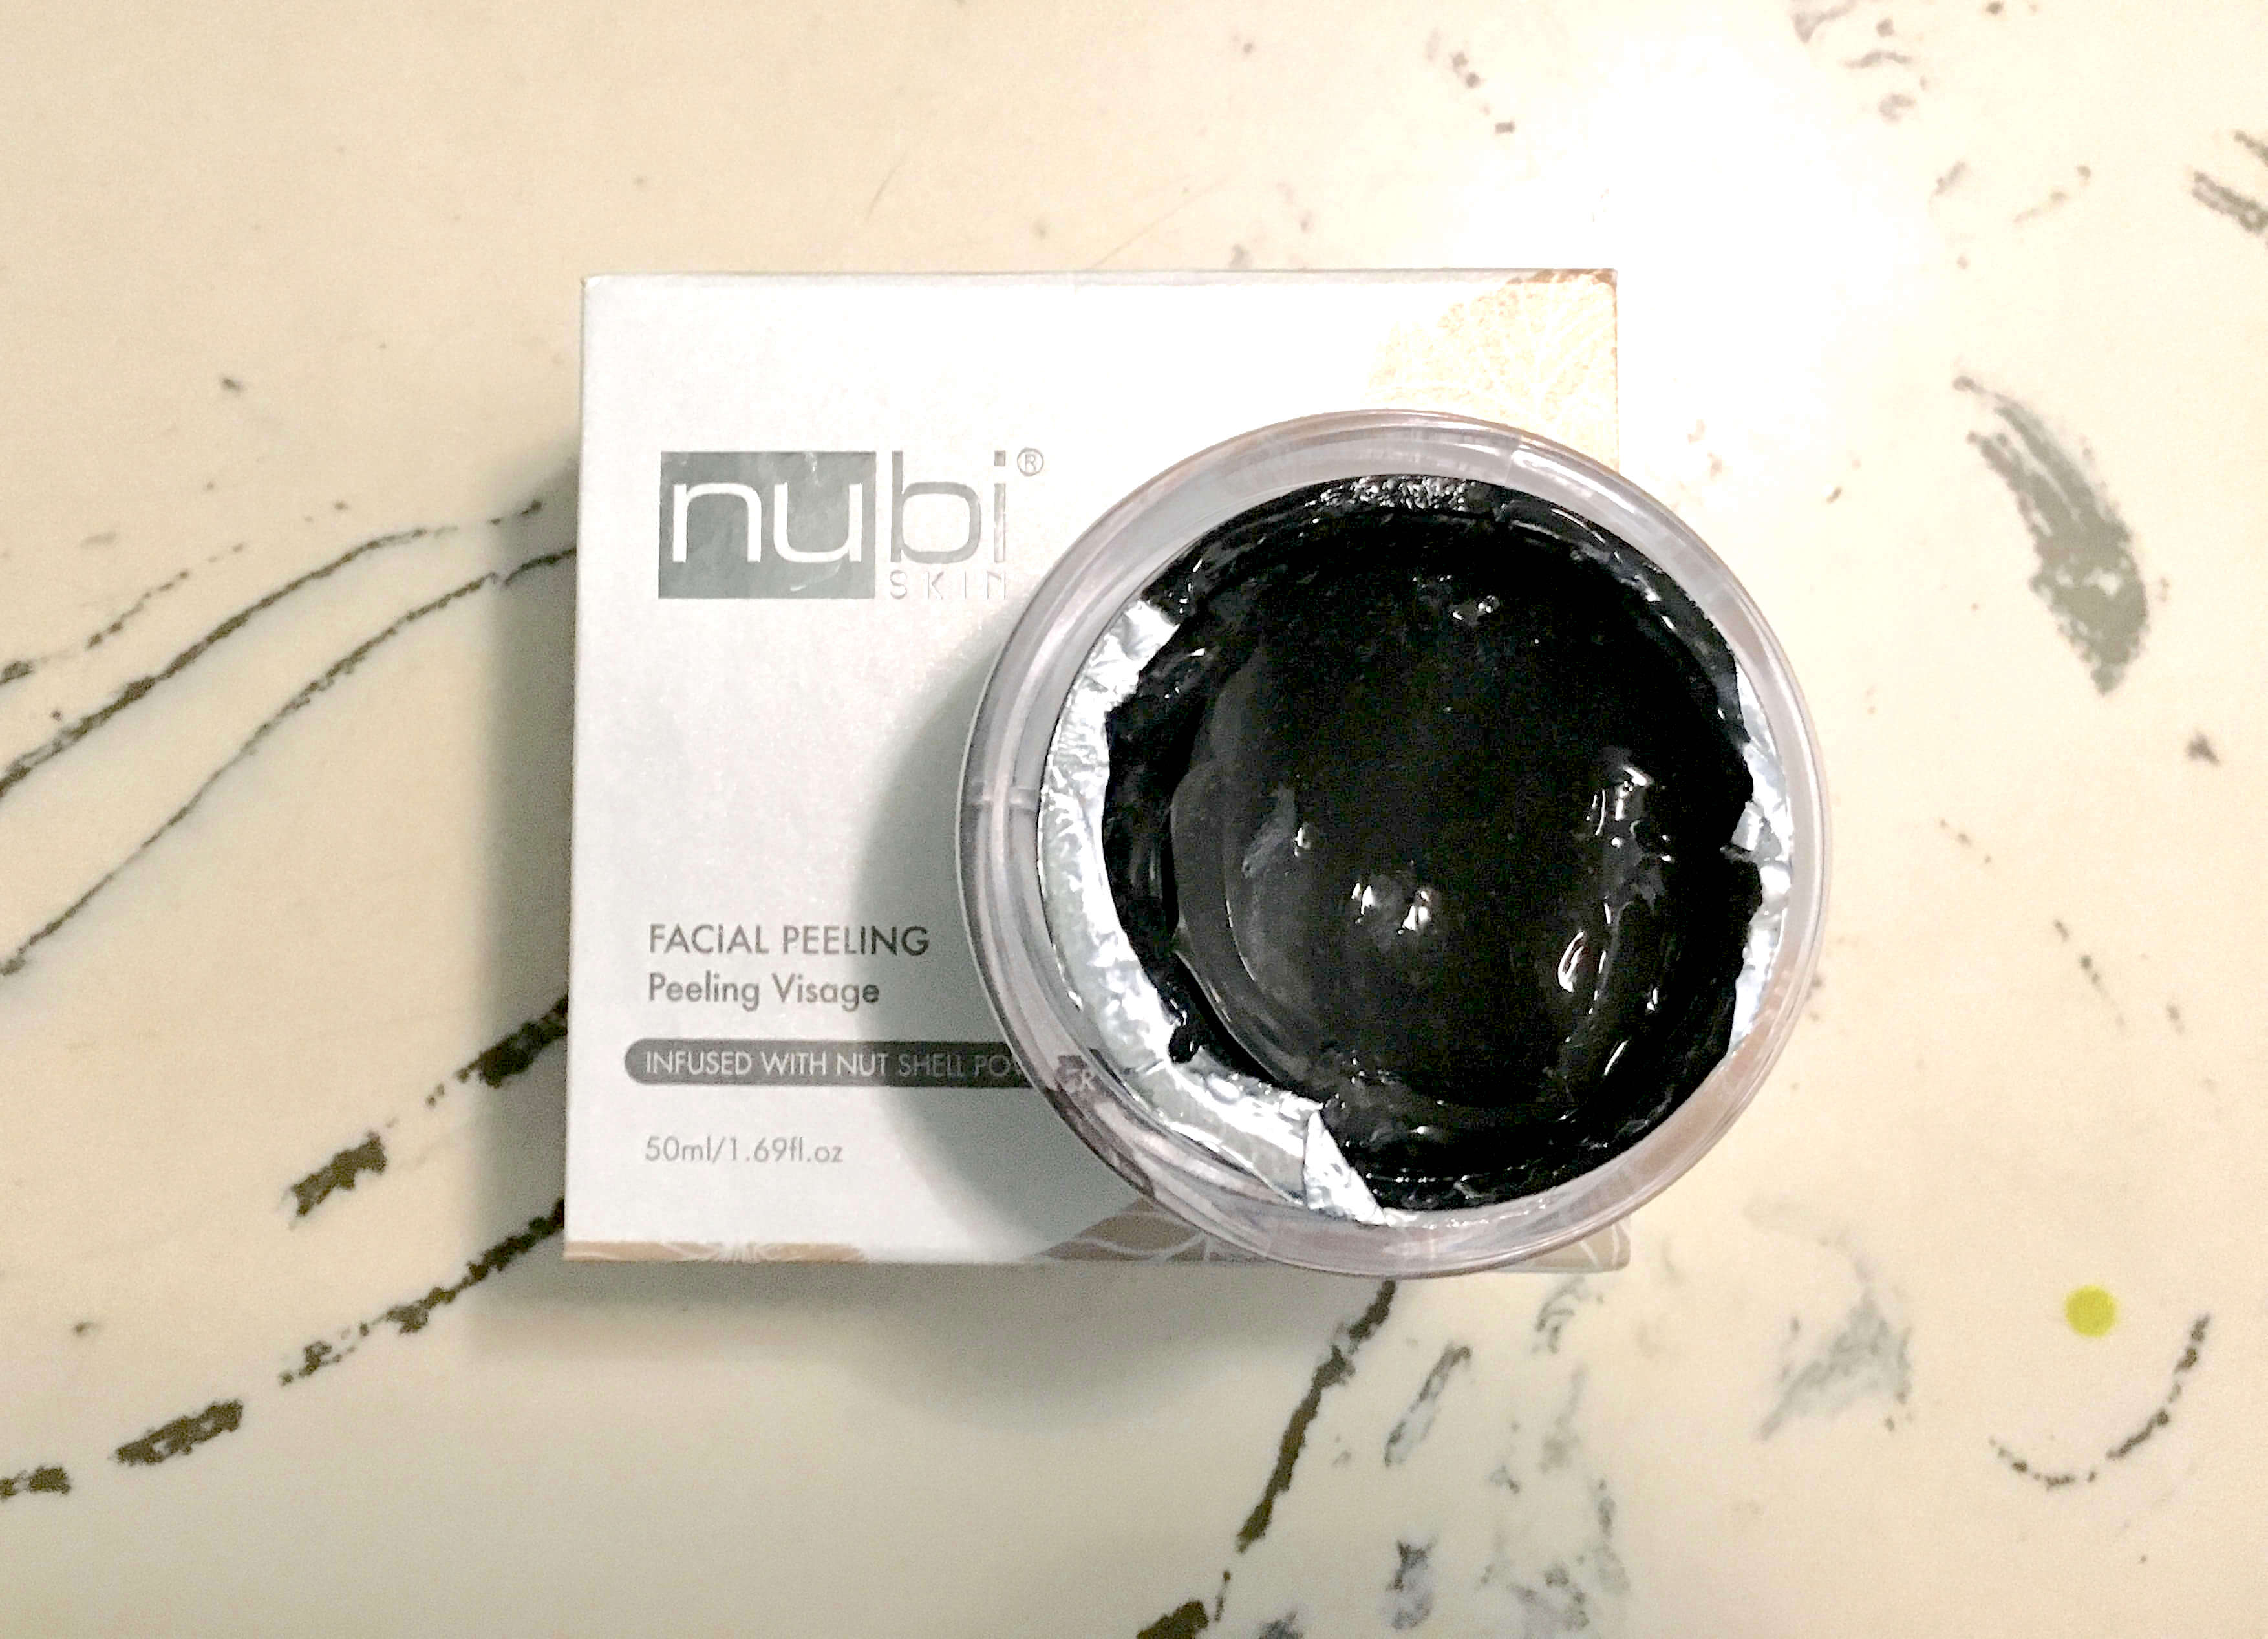 Nubi Skin Facial Peeling Visage review